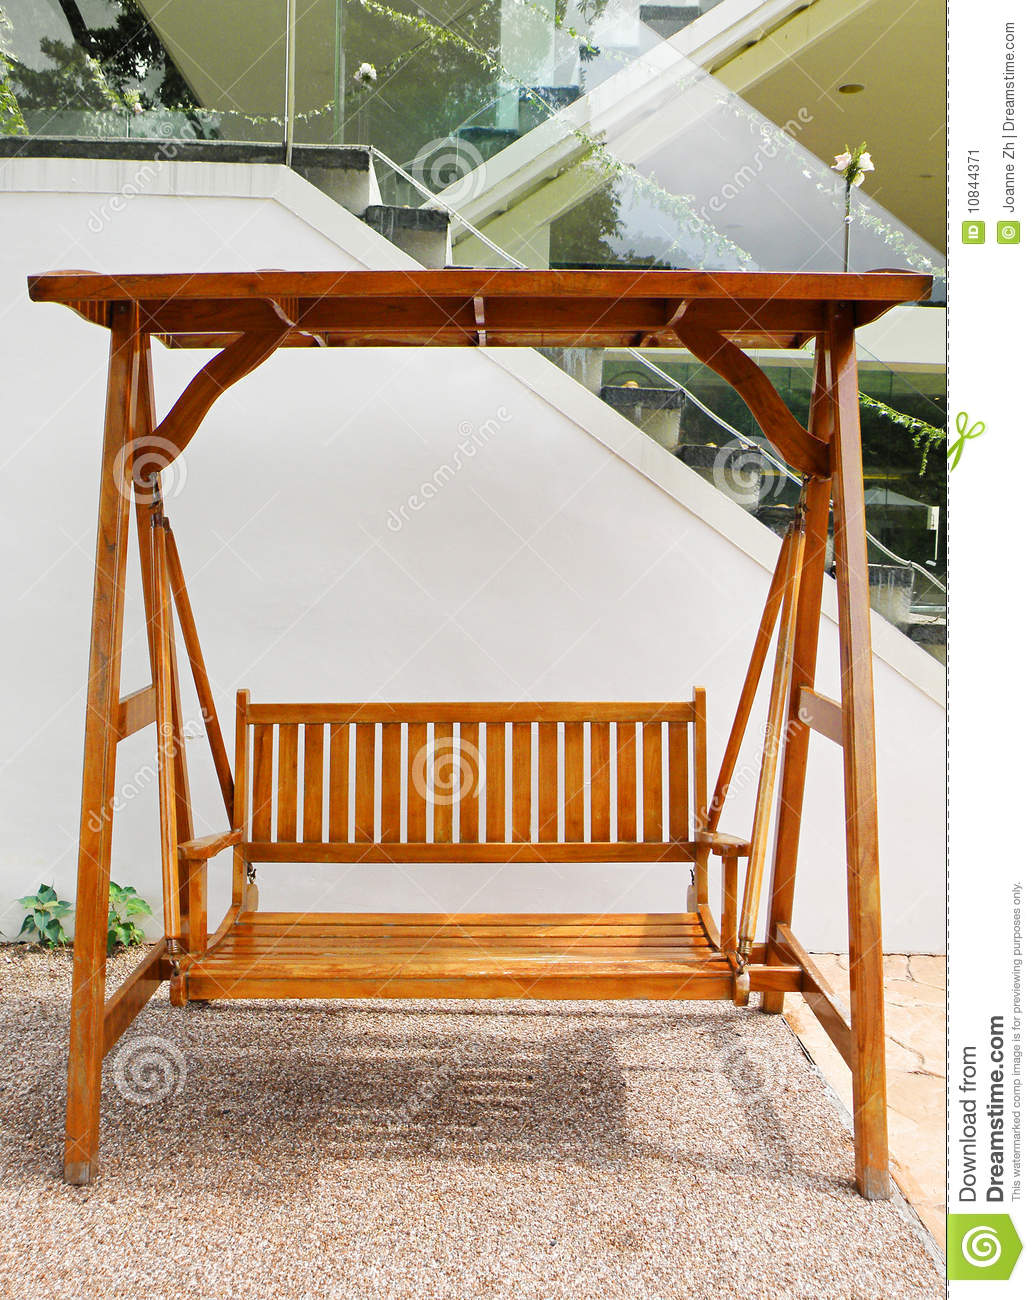 Wooden Swing With Double Seat Outdoors Stock Image Image